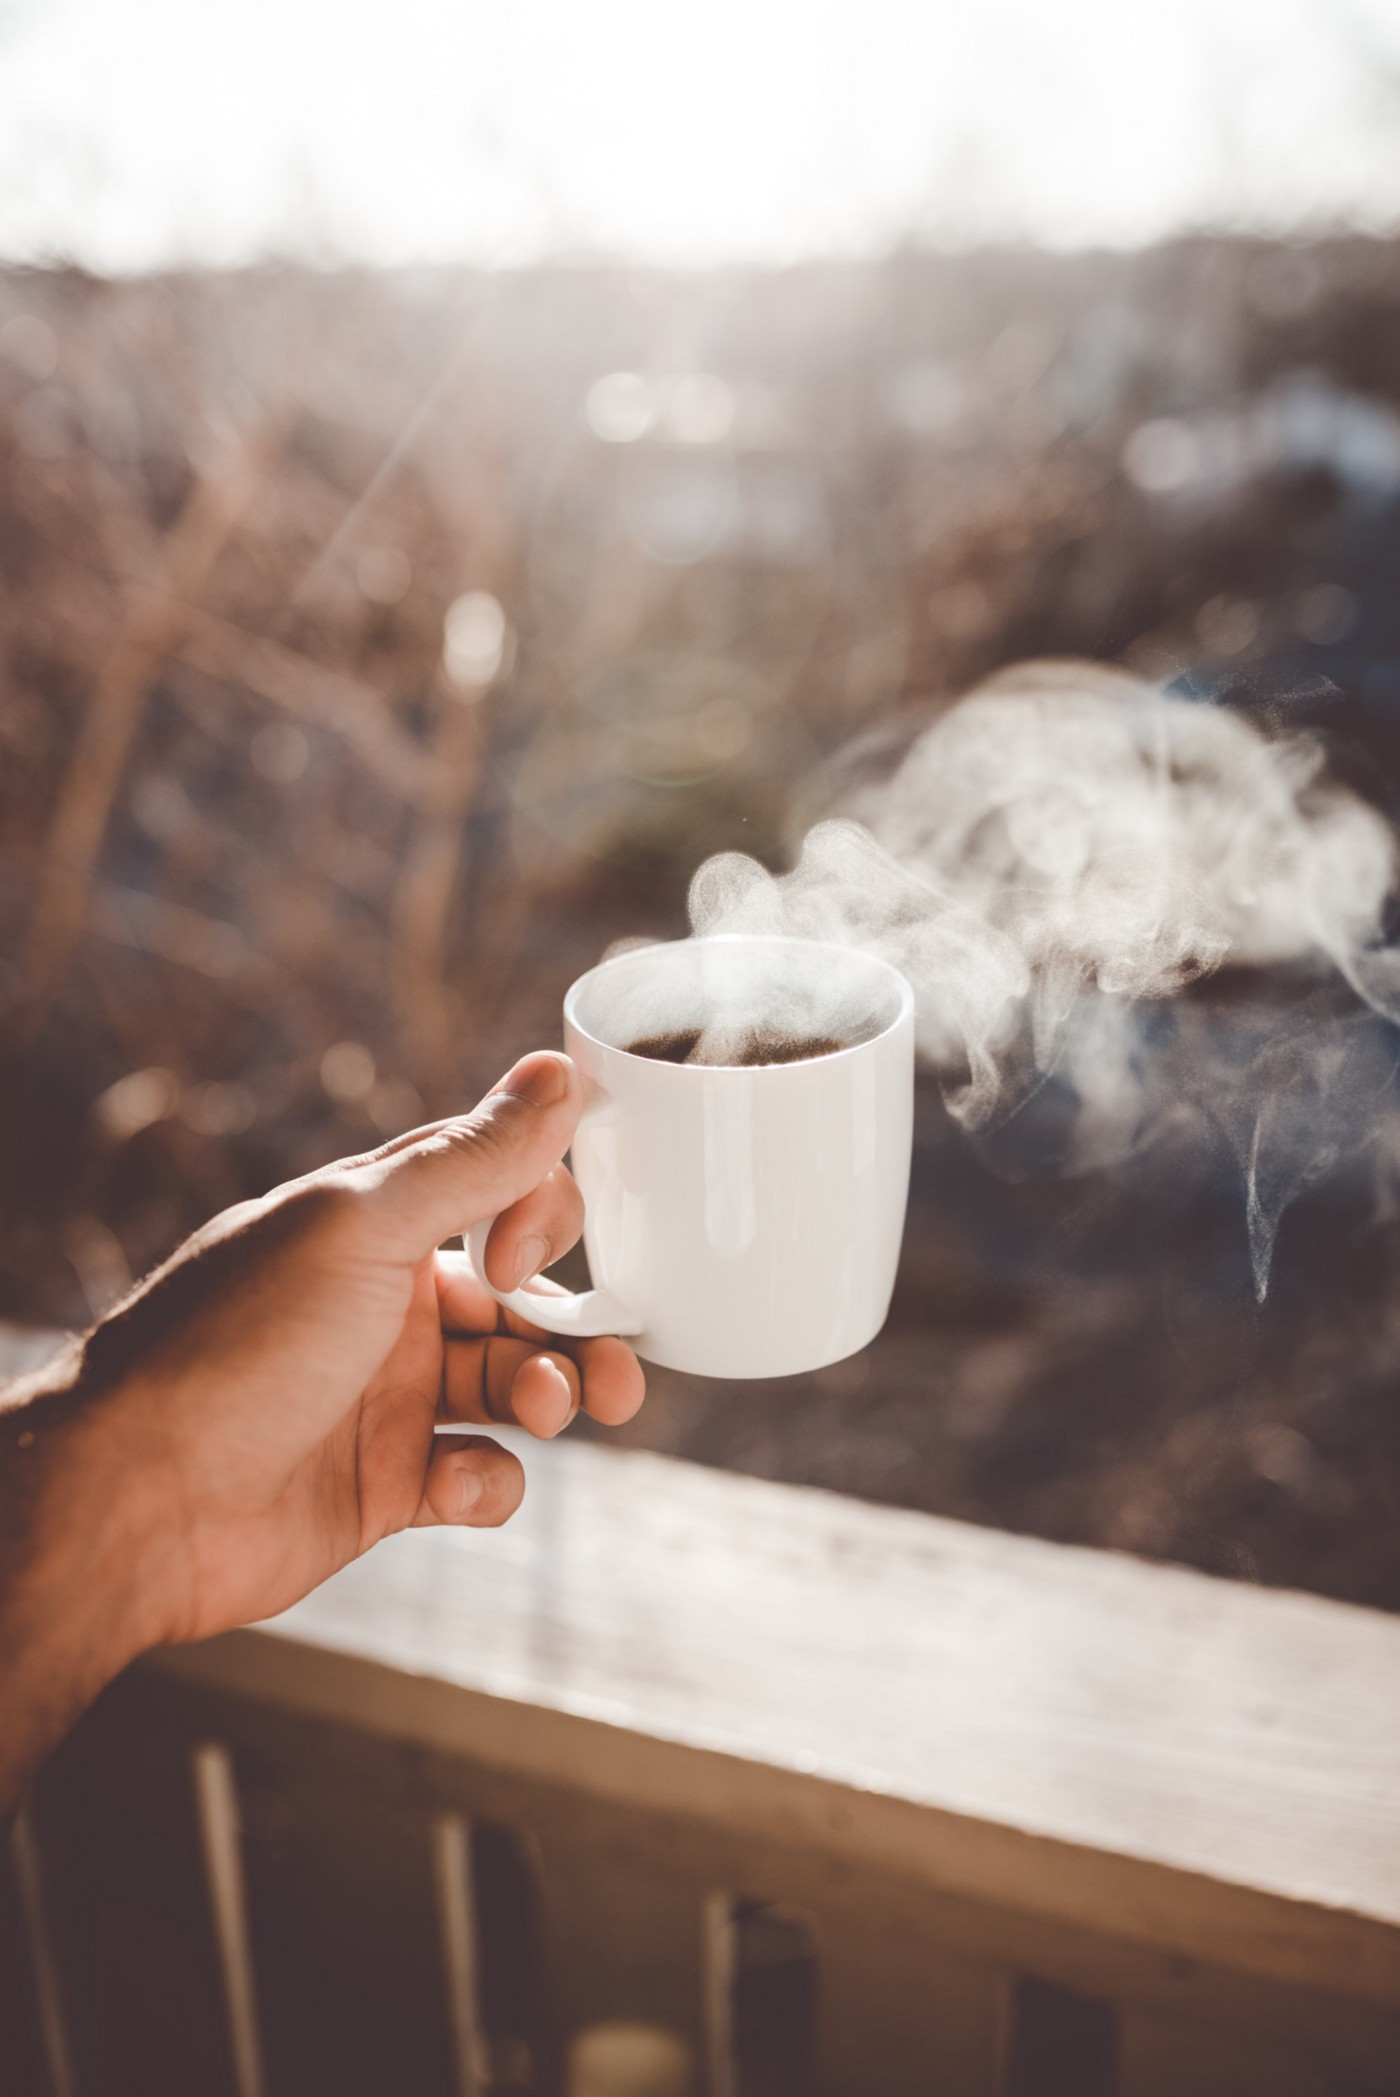 Outside on a porch, just a person's hand is in shot holding a steaming cup of coffee.